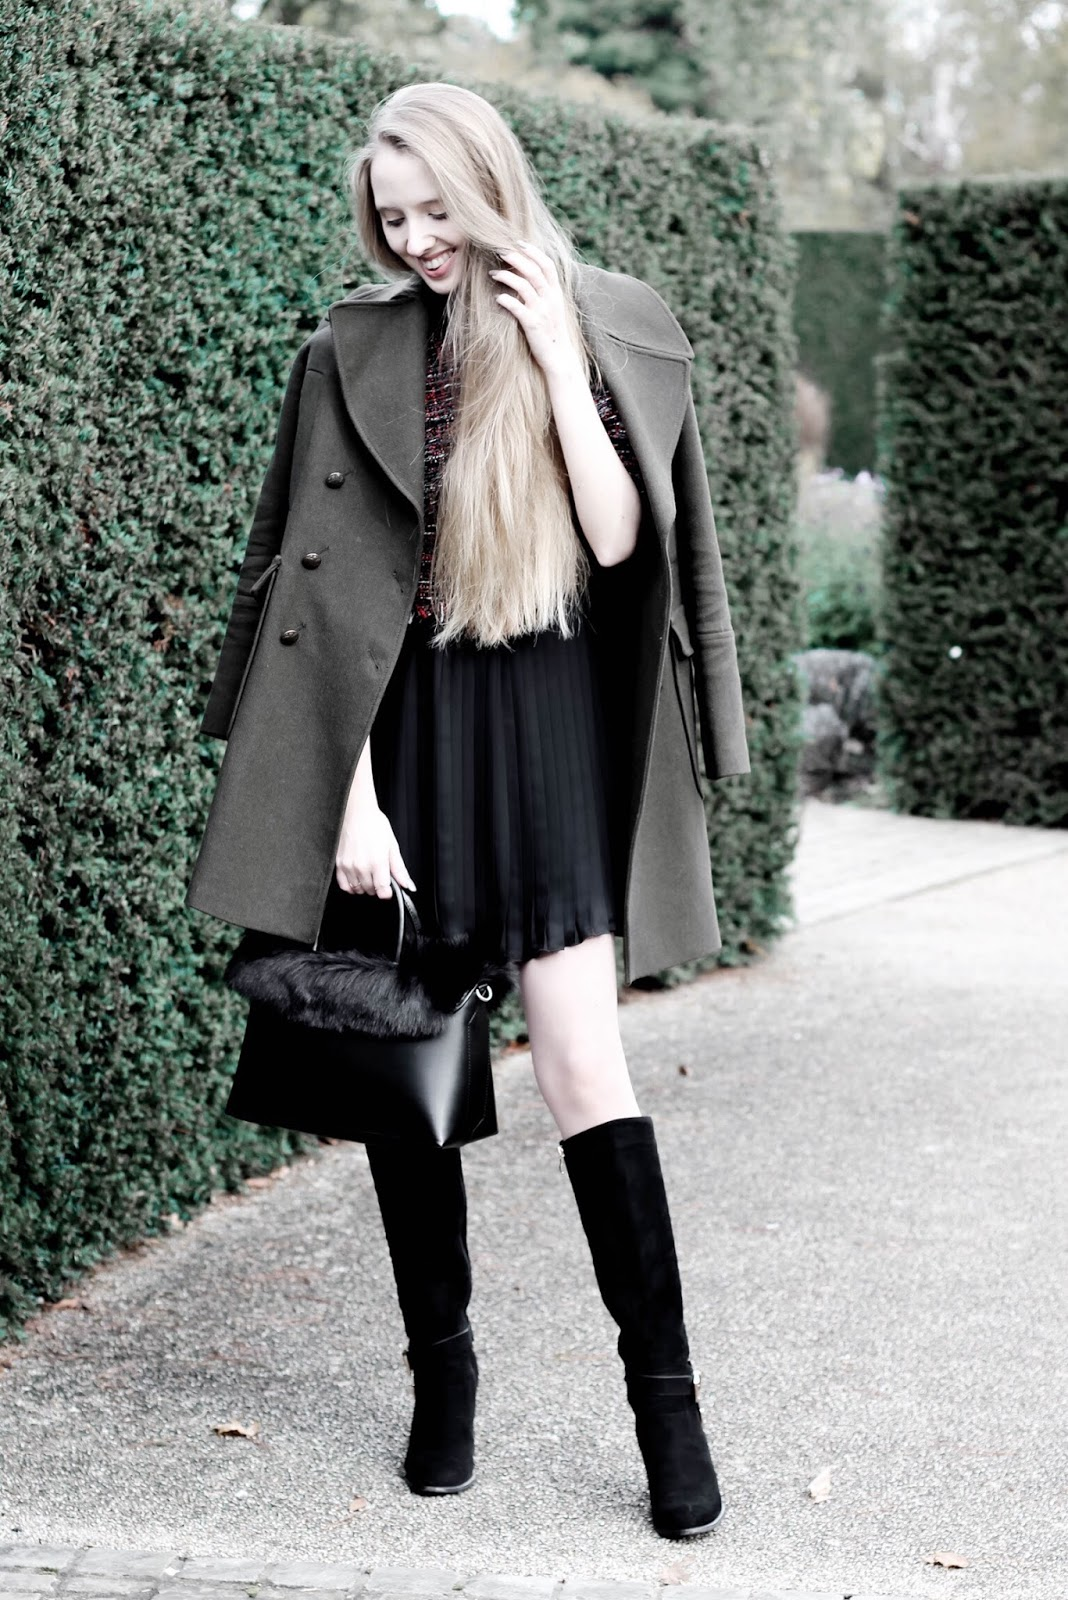 Fashion blogger styling khaki wool coat in winter